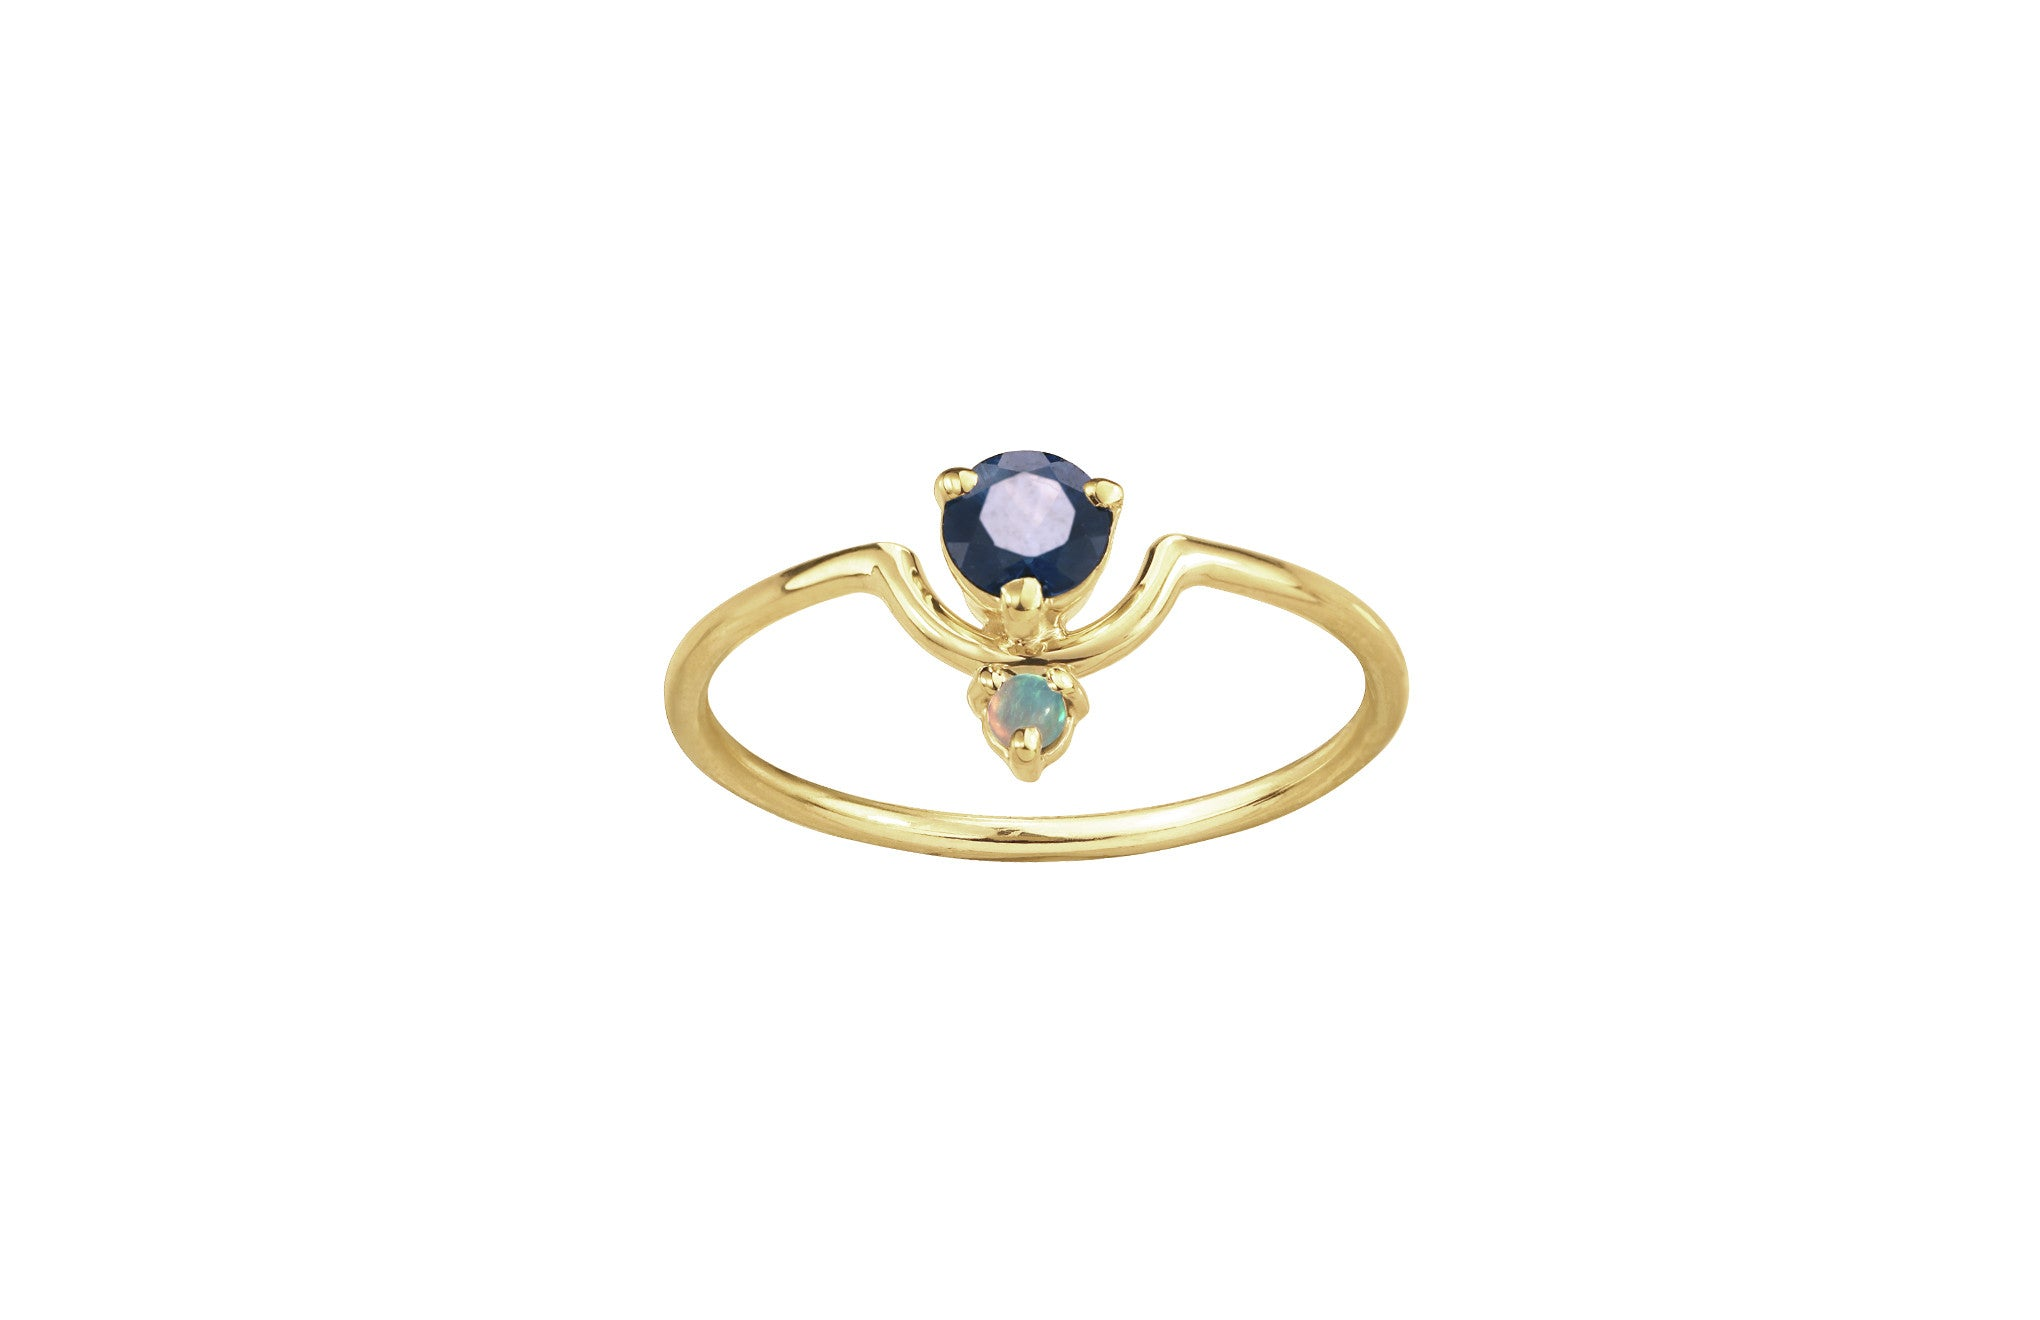 One of a Kind Nestled Sapphire and Opal Ring - Available at Ylang 23